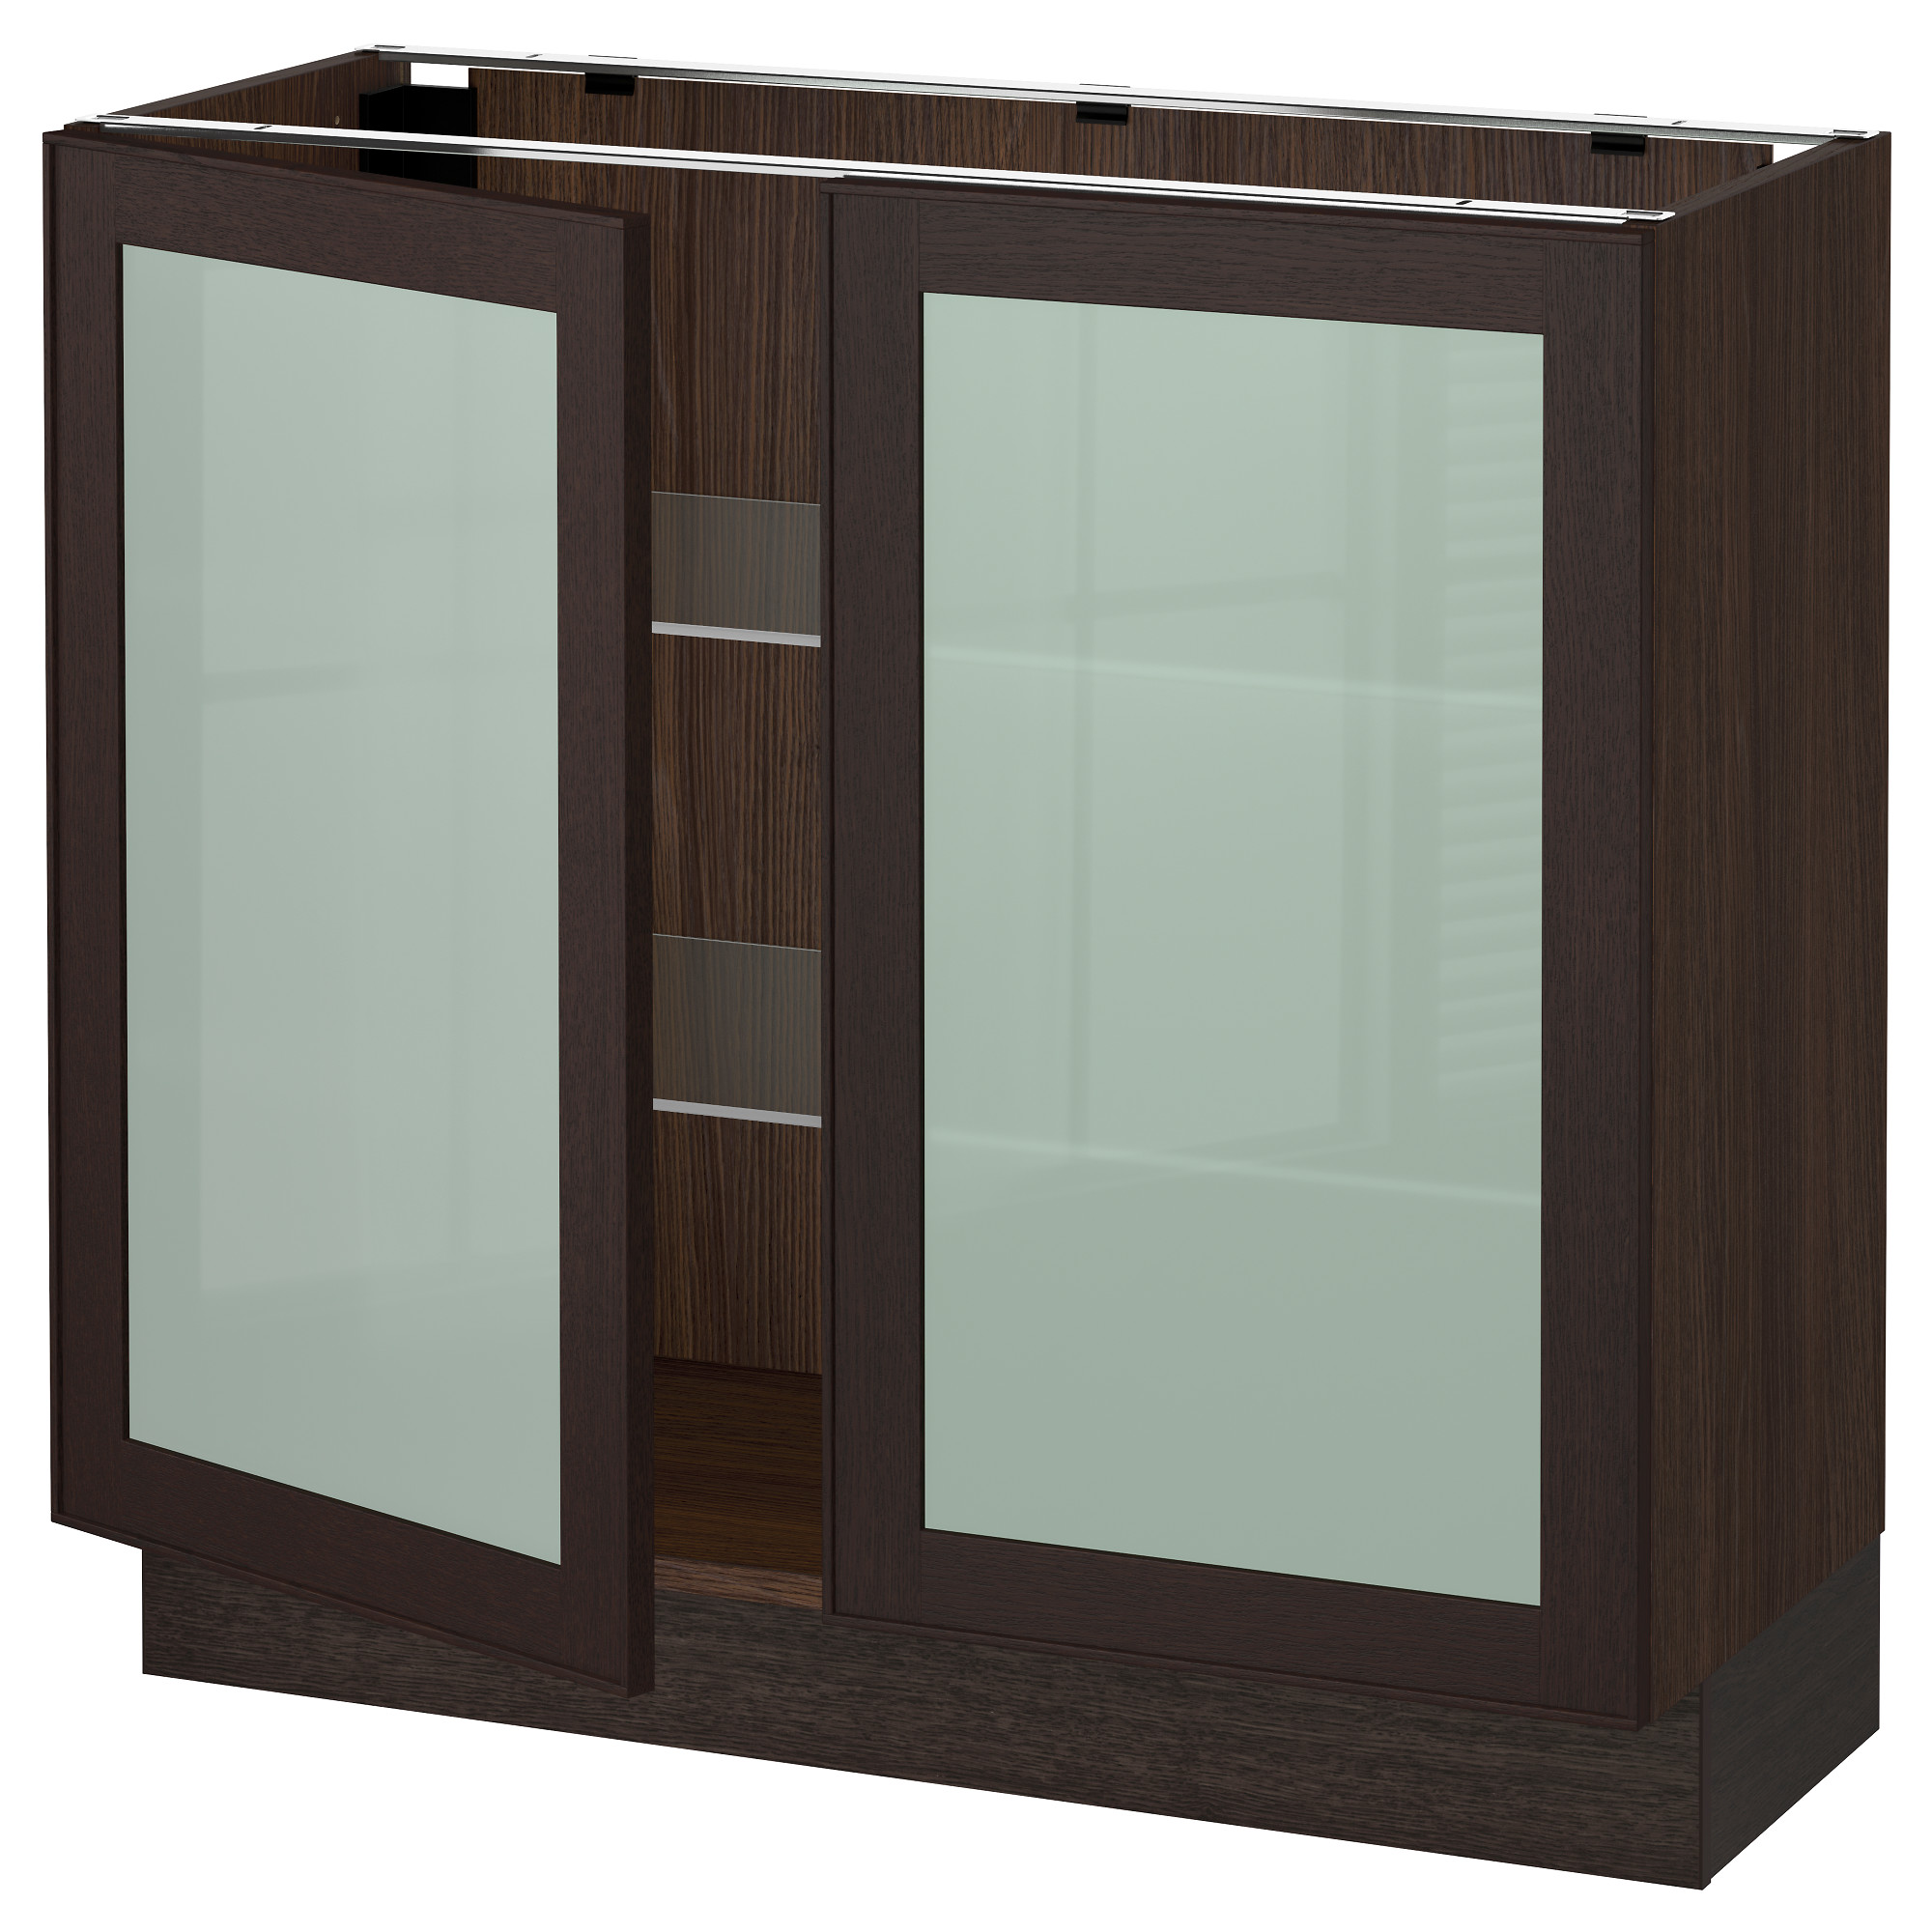 SEKTION Base cabinet with 2 glass doors - wood effect brown, Ekestad ...